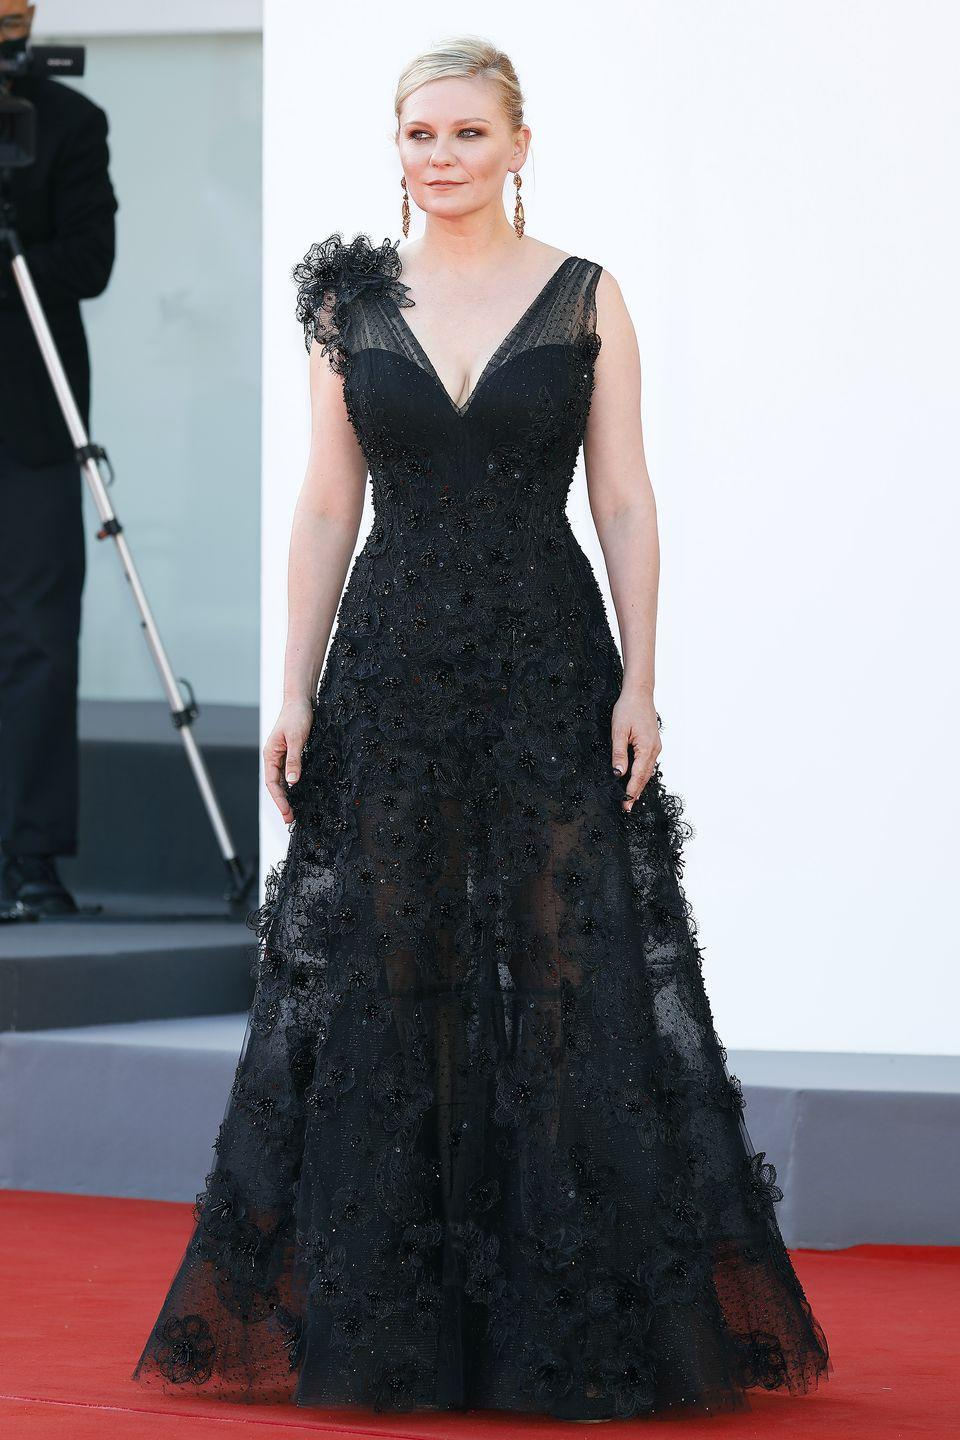 <p>Kirsten Dunst arrived in a stunning black embellished gown on the red carpet. </p>